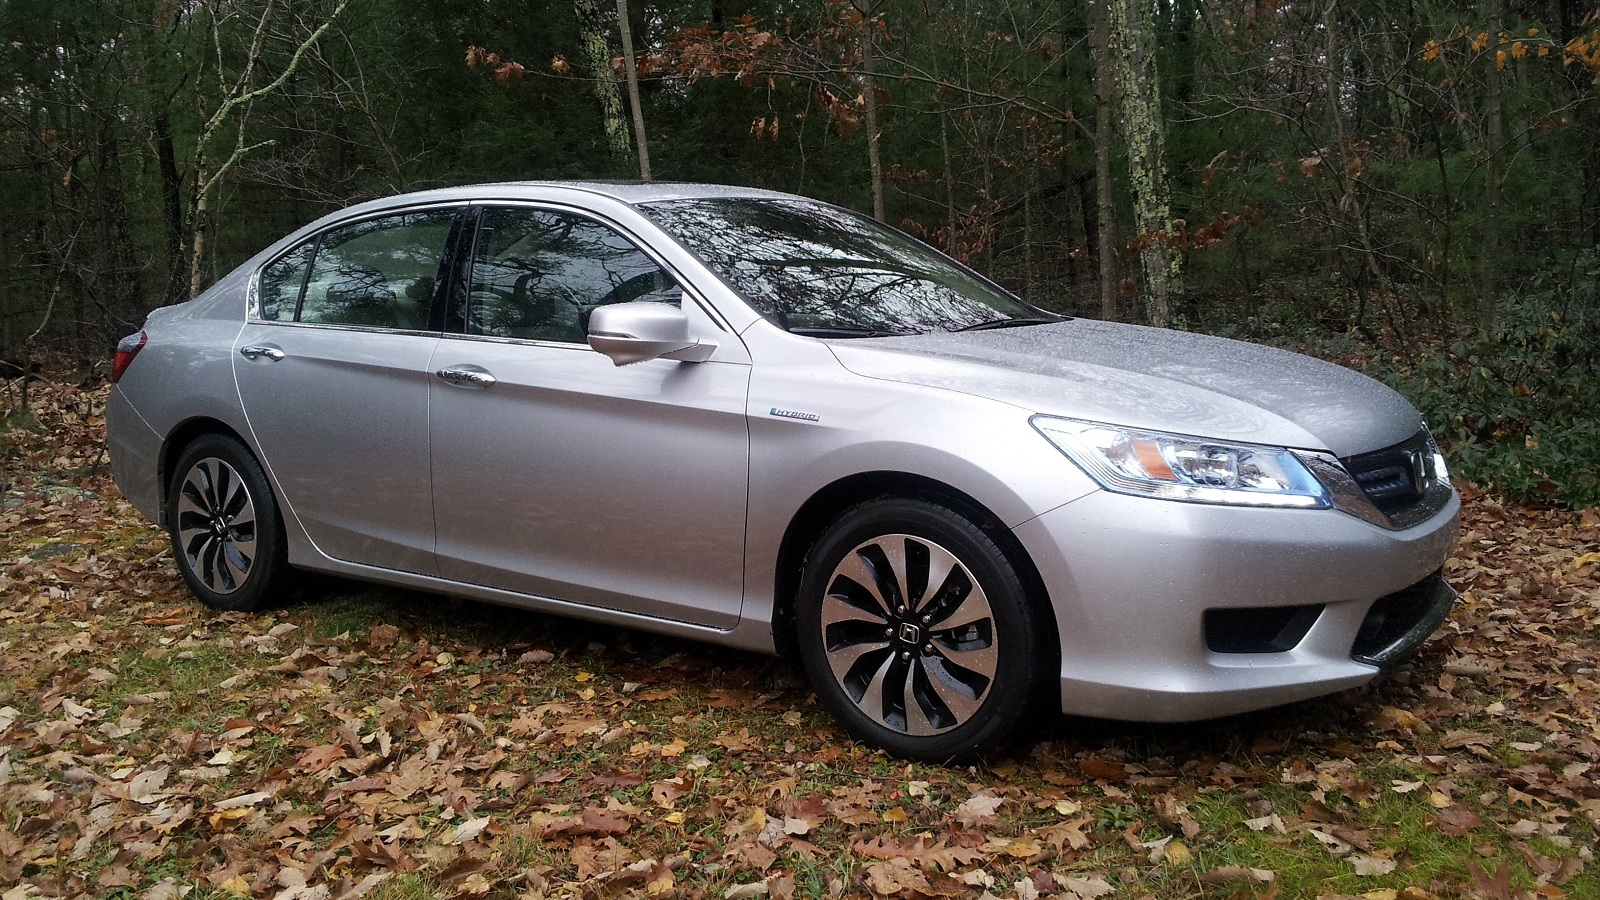 2014 Honda Accord Hybrid, Catskill Mountains, NY, Nov 2013